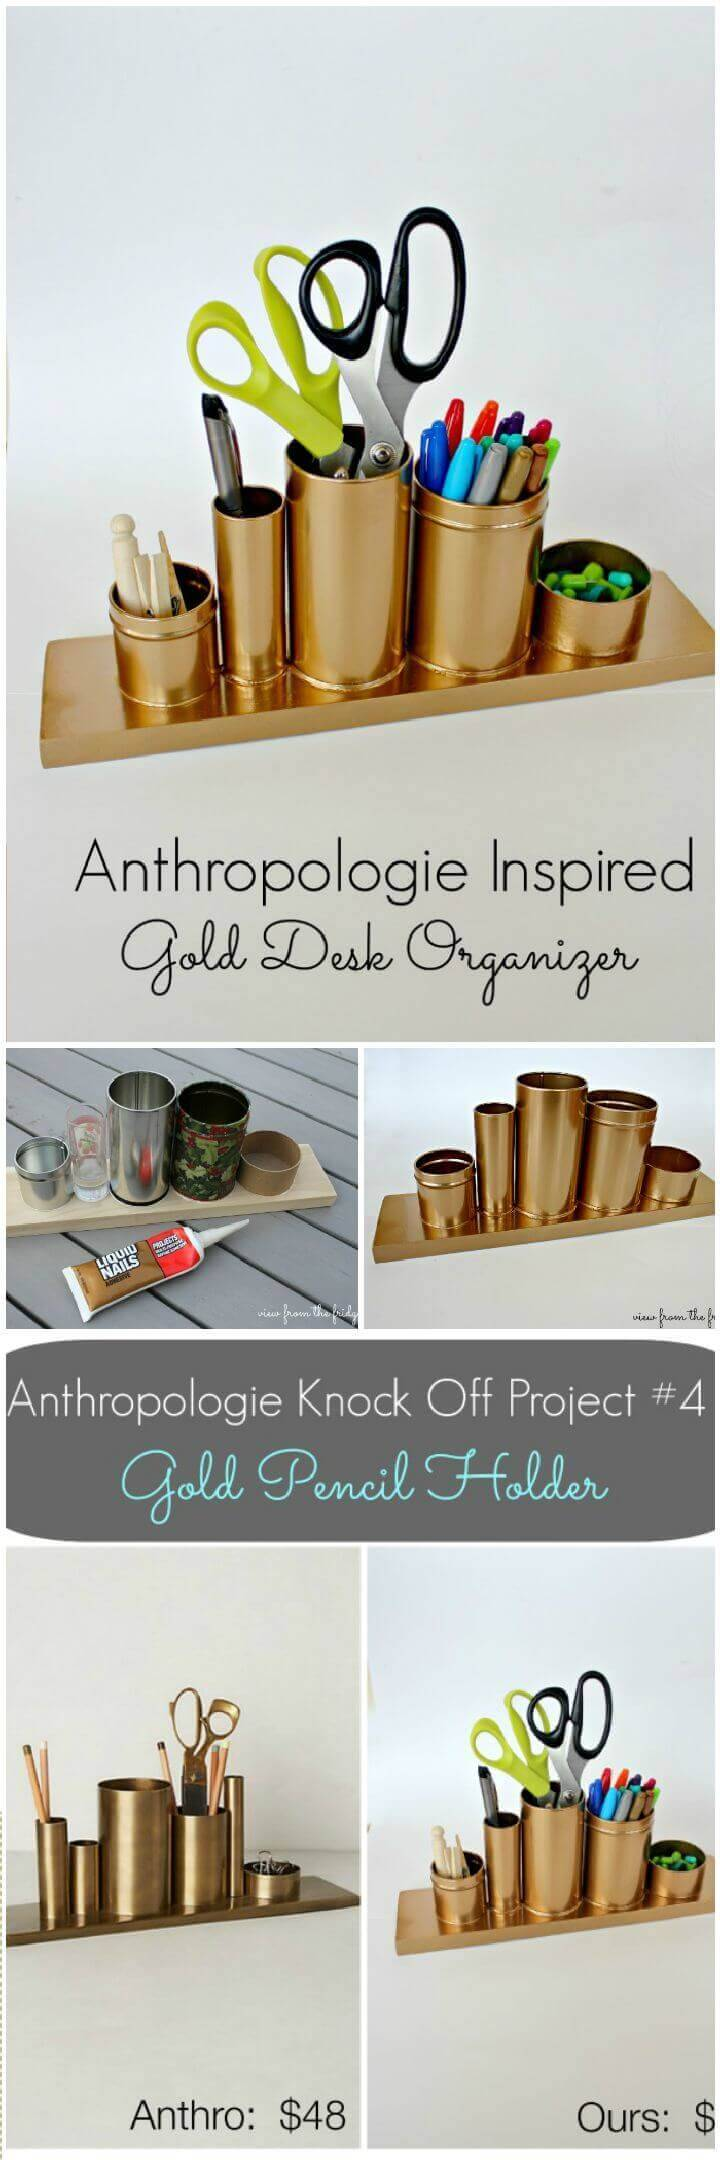 Gold Pencil Holder Anthro Knock Off